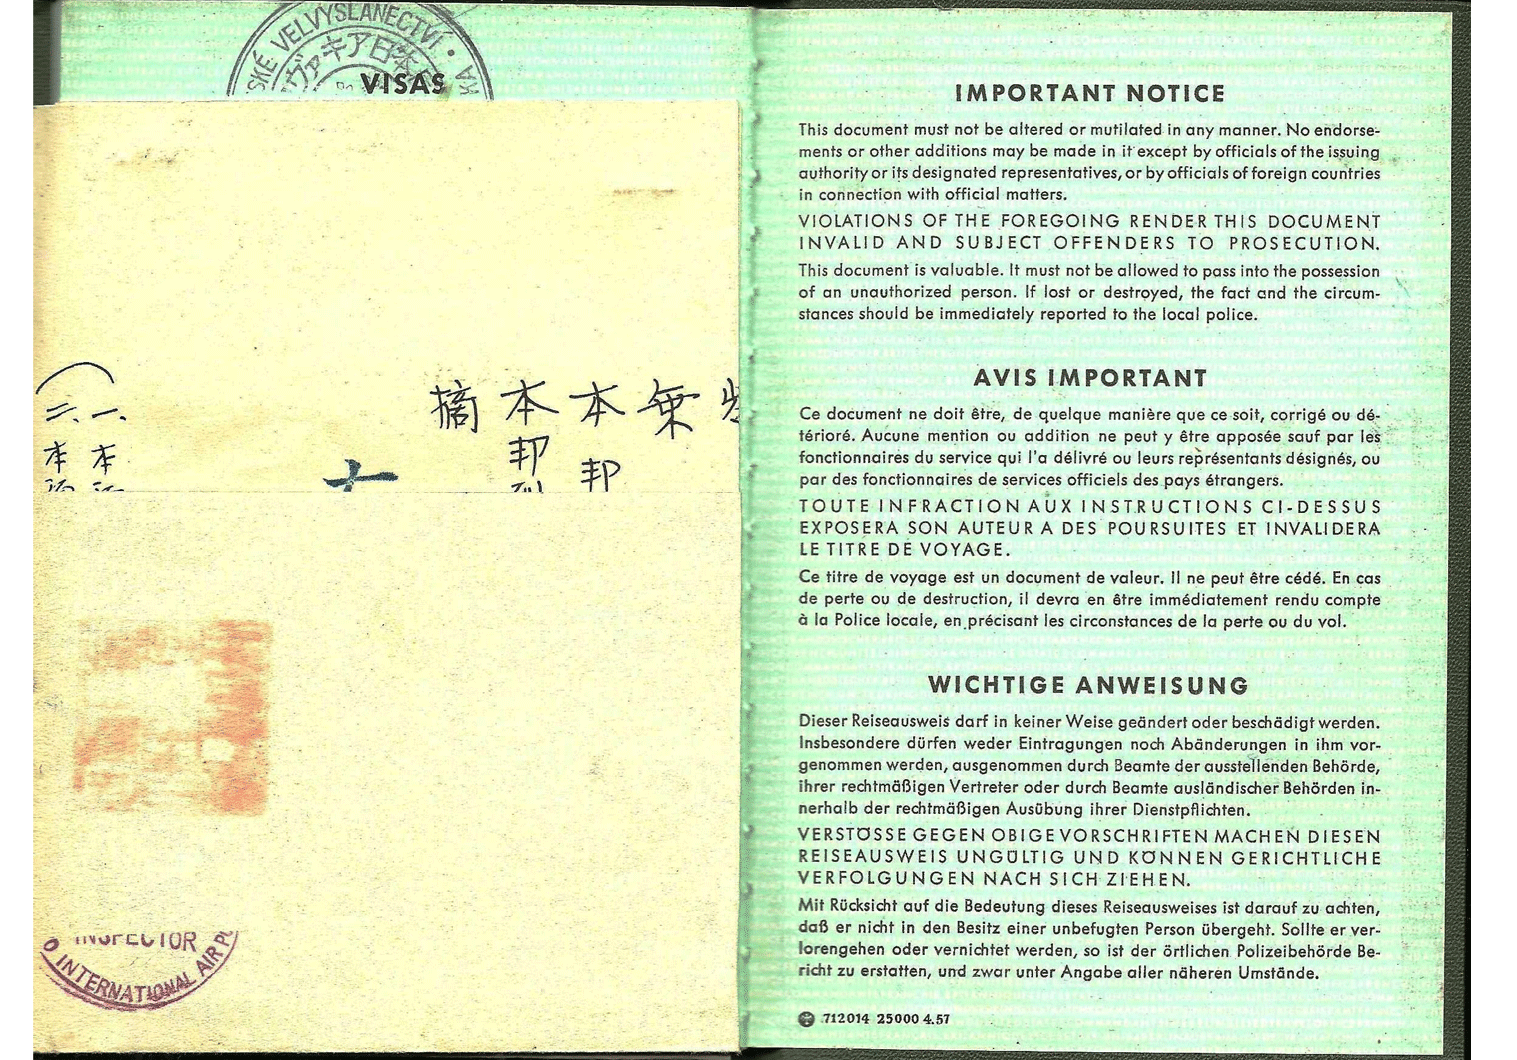 Allied German passport